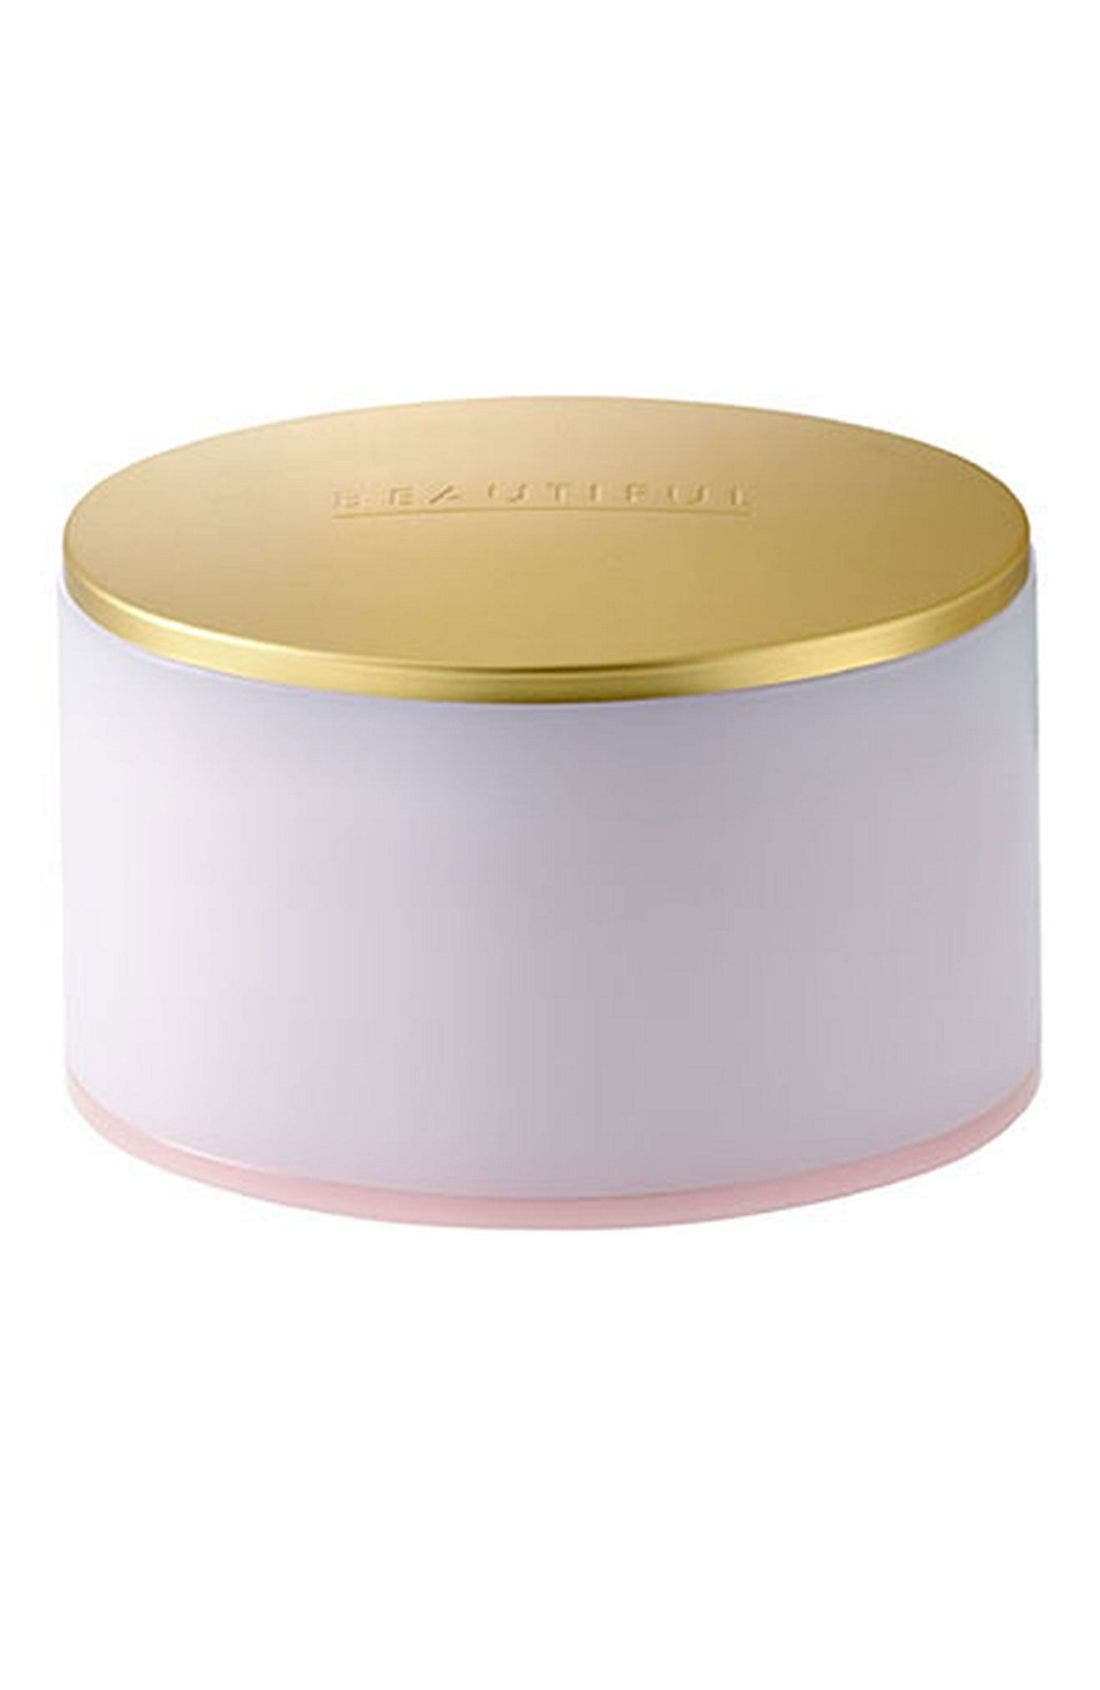 Estée Lauder Beautiful Perfumed Body Powder with Puff